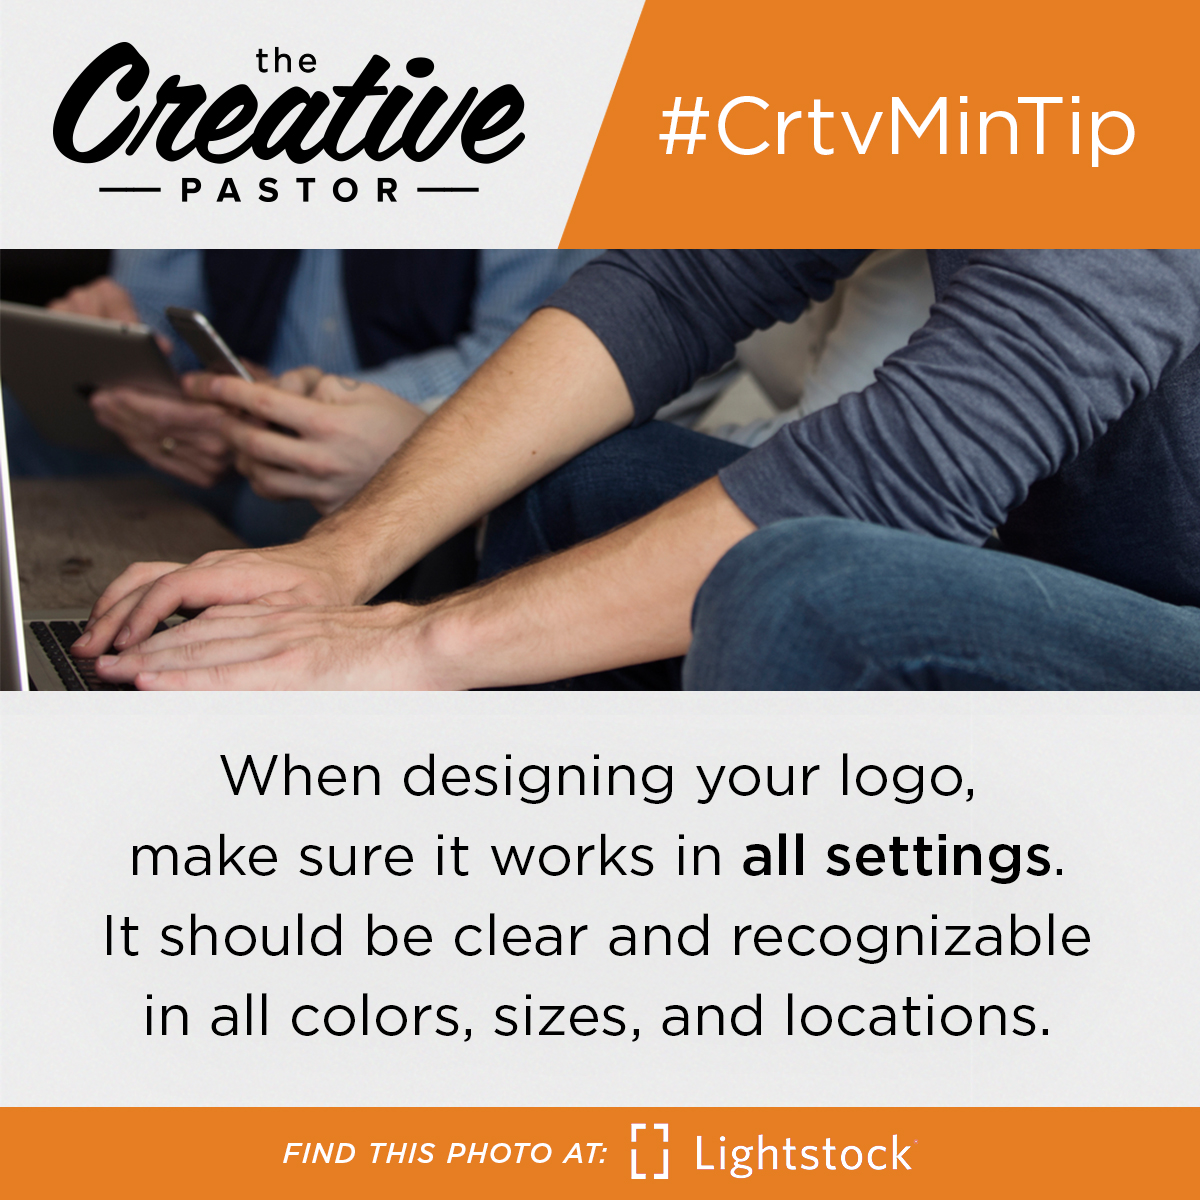 #CrtvMinTIp: When designing your logo, make sure it works in all settings. It should be clear and recognizable in all colors, sizes, and locations.